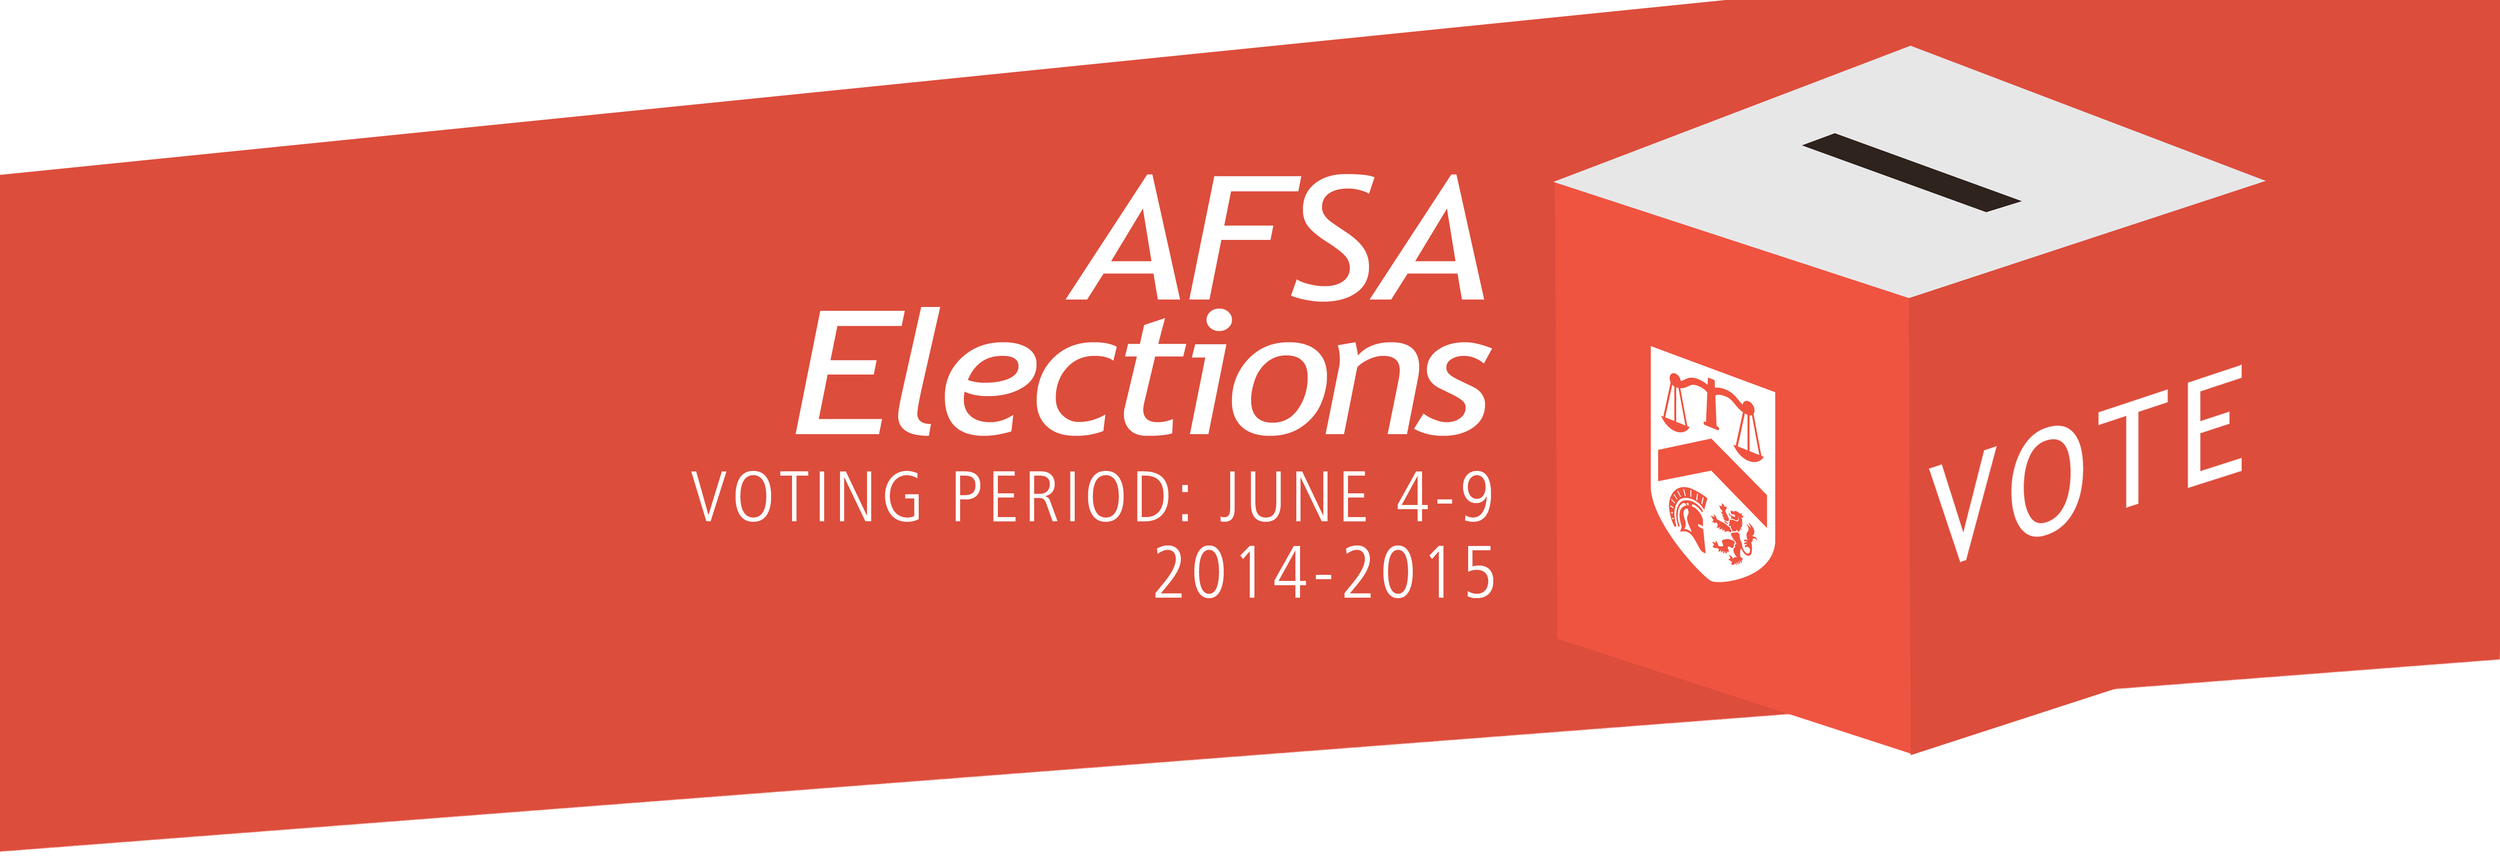 Afsa-voting.png